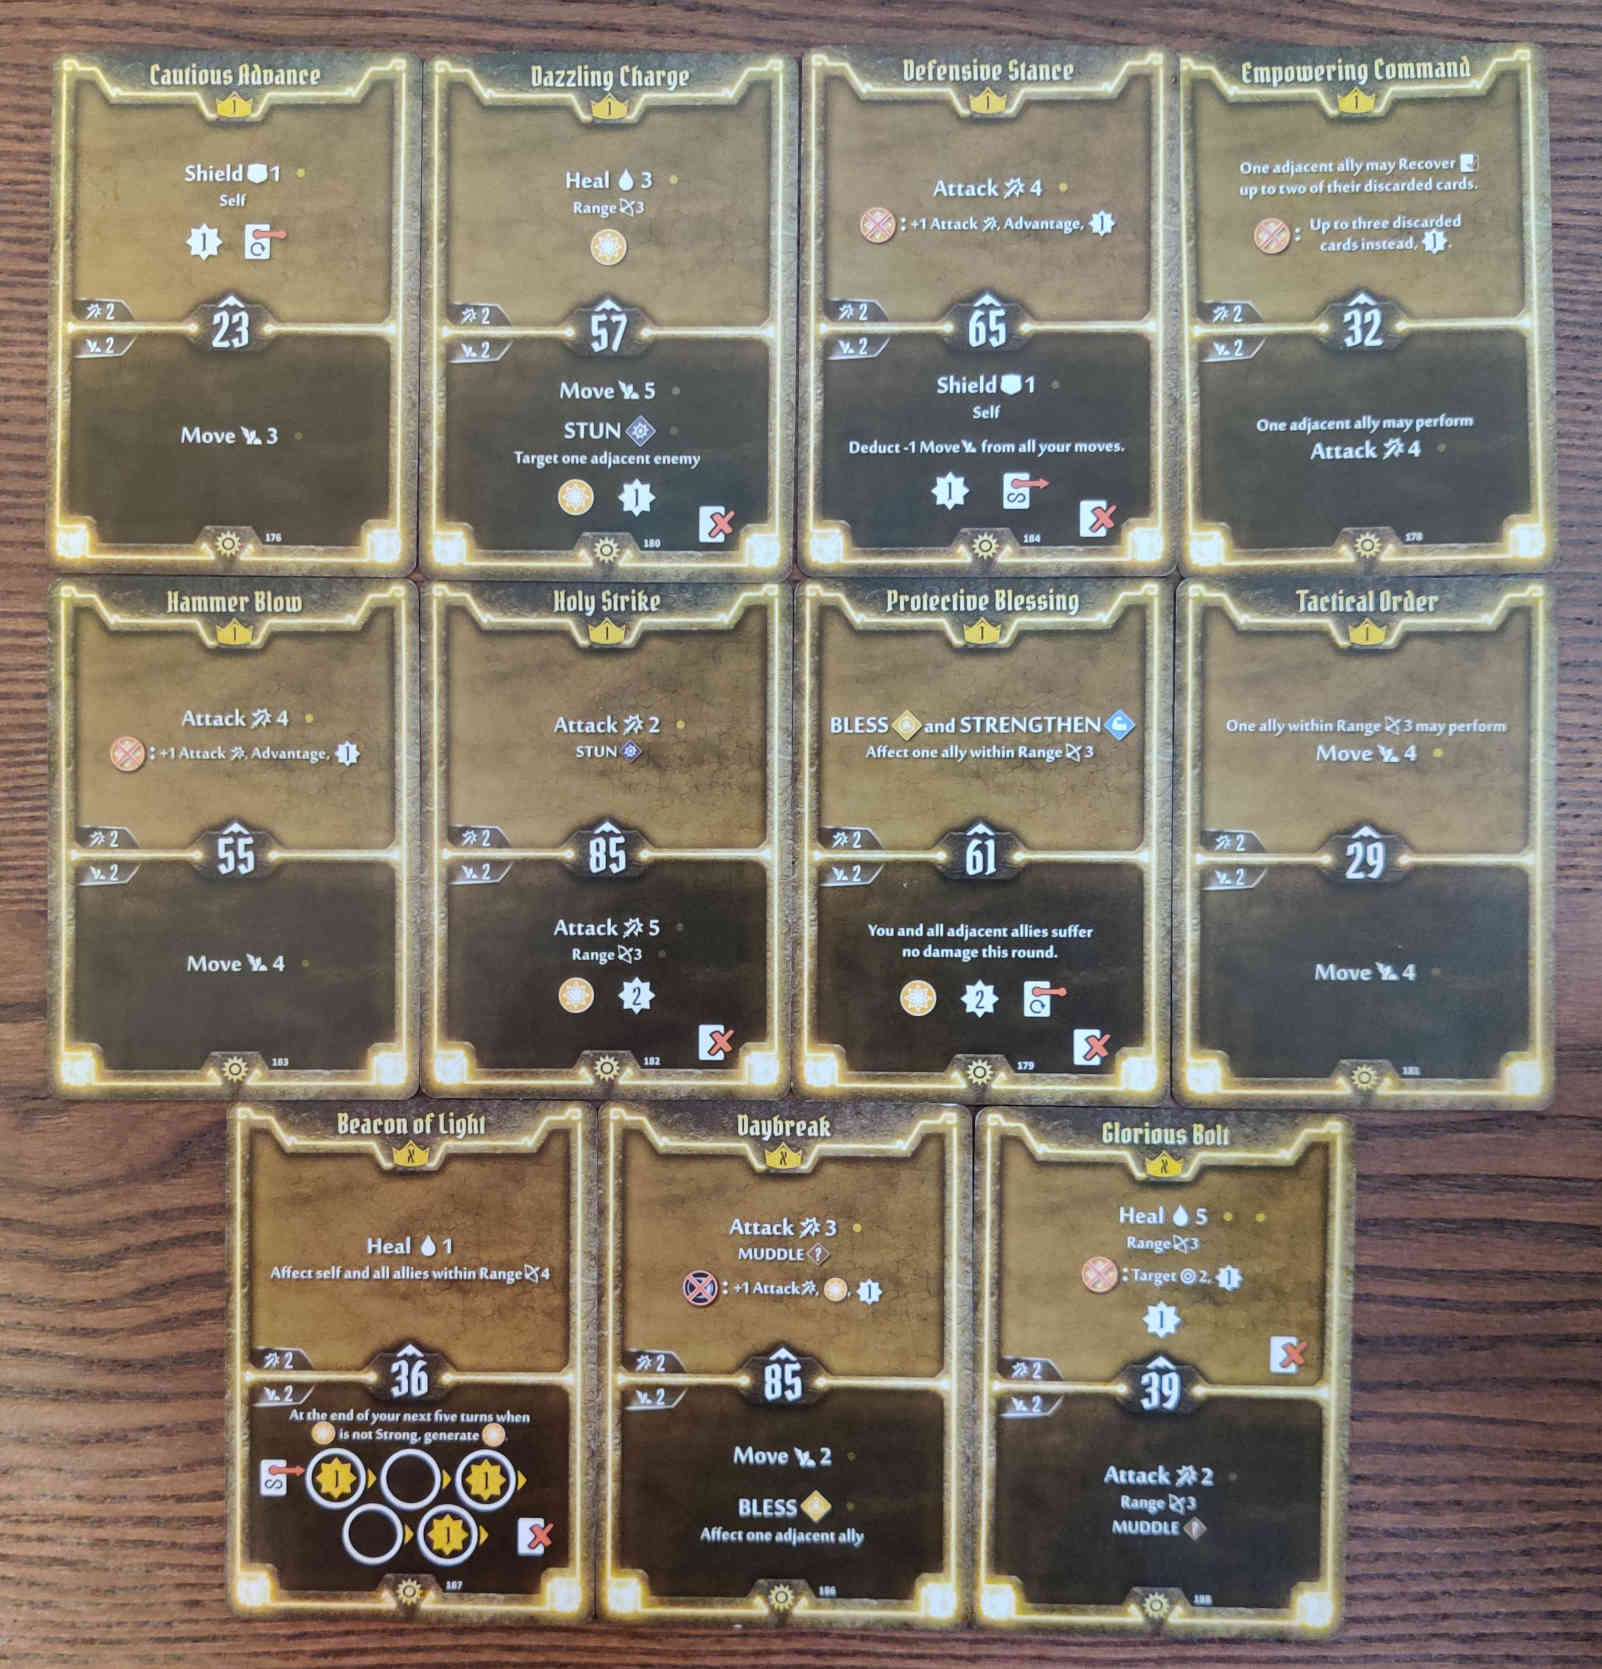 Gloomhaven Sunkeeper Damage Build Level 1 cards